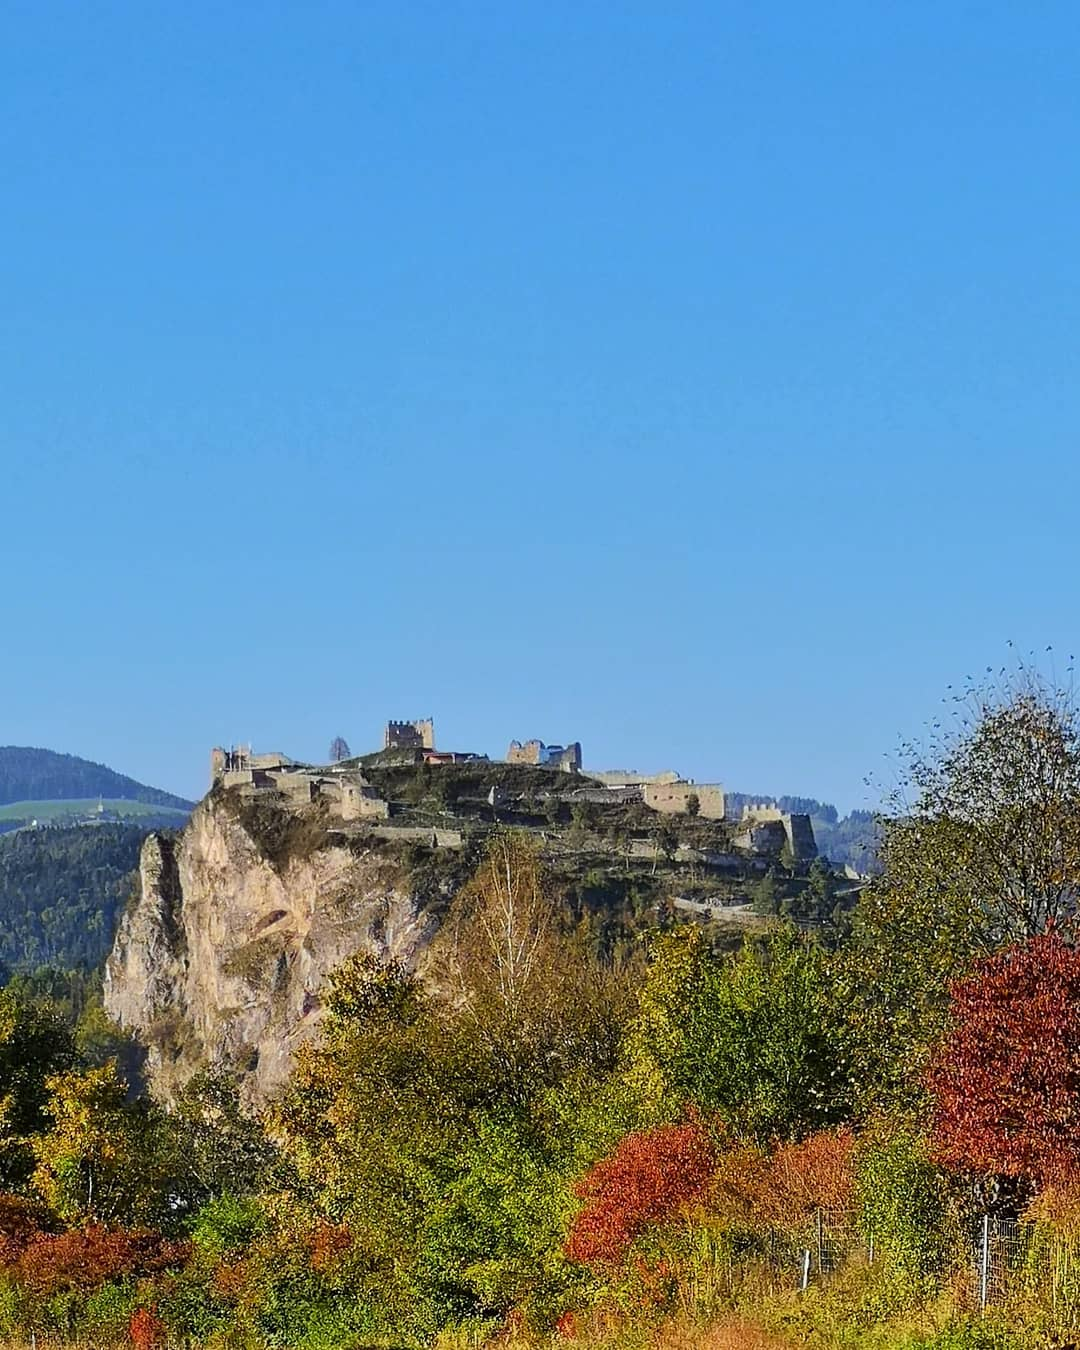 View of the Griffner Schlossberg